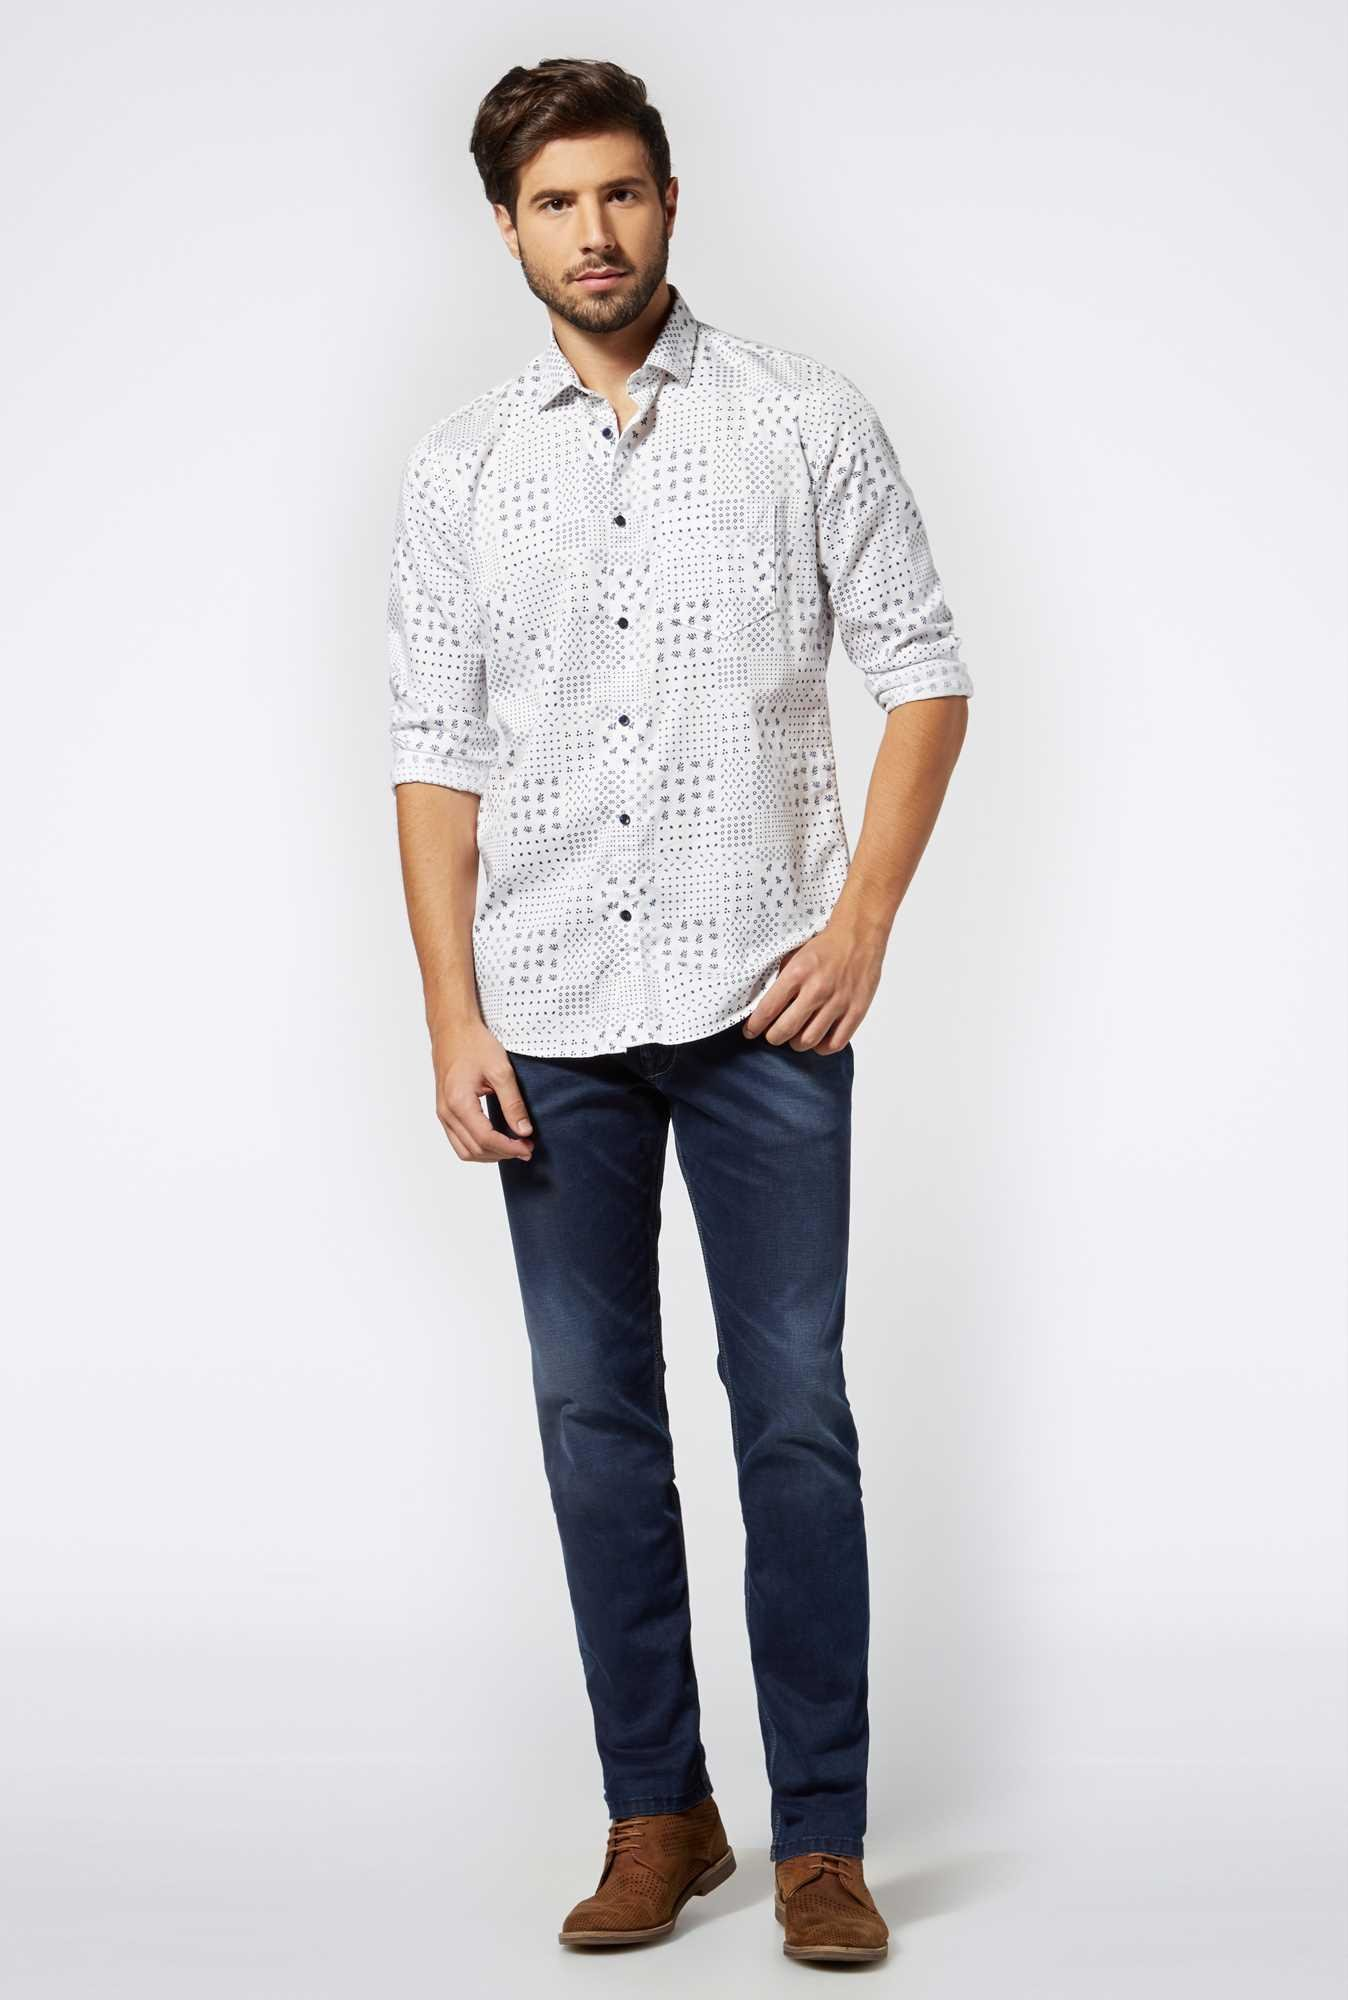 Easies Mauve Cotton Casual Shirt